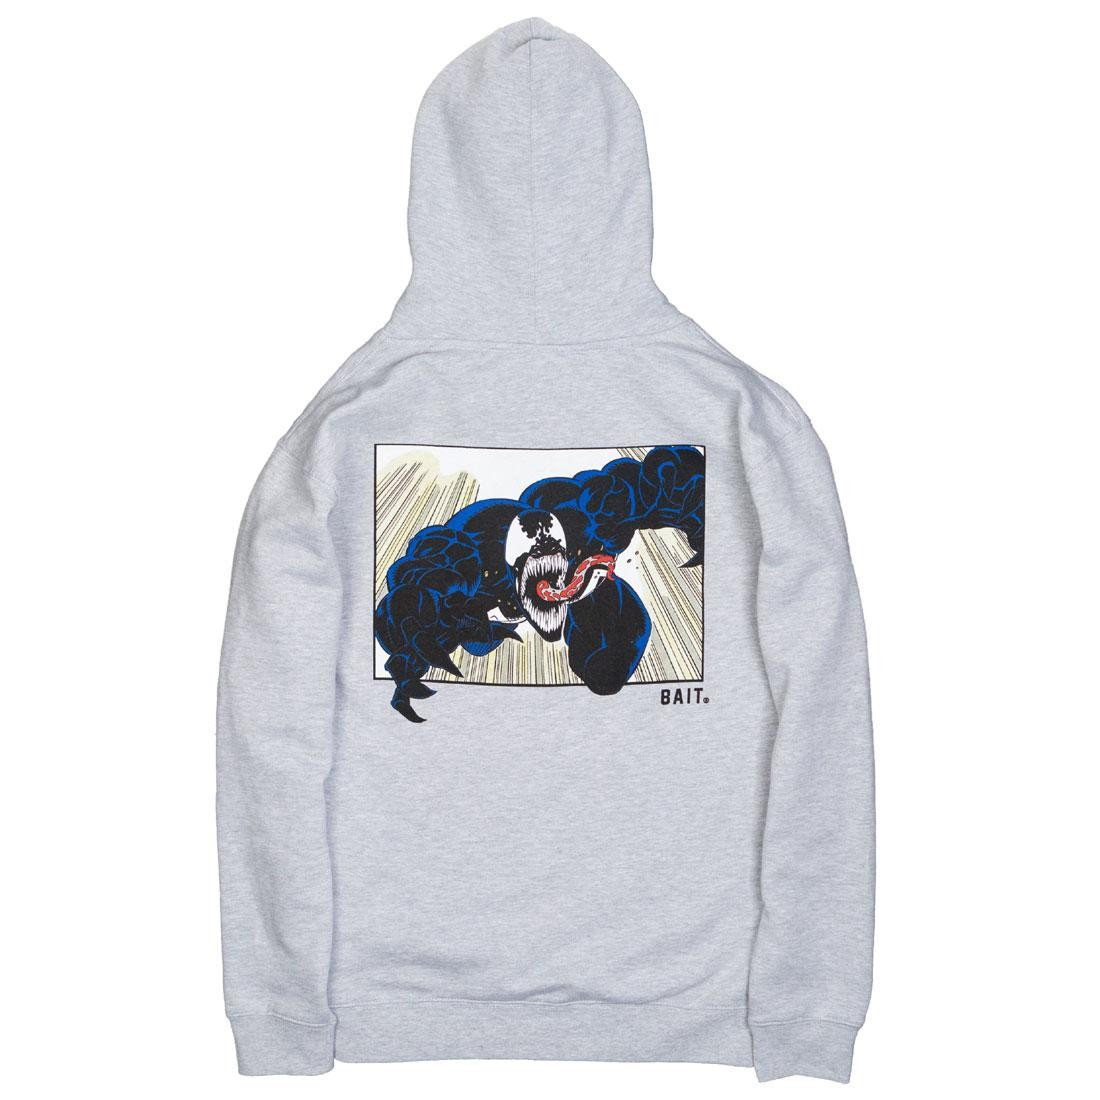 BAIT x Marvel Venom Men Comic Hoody (gray)